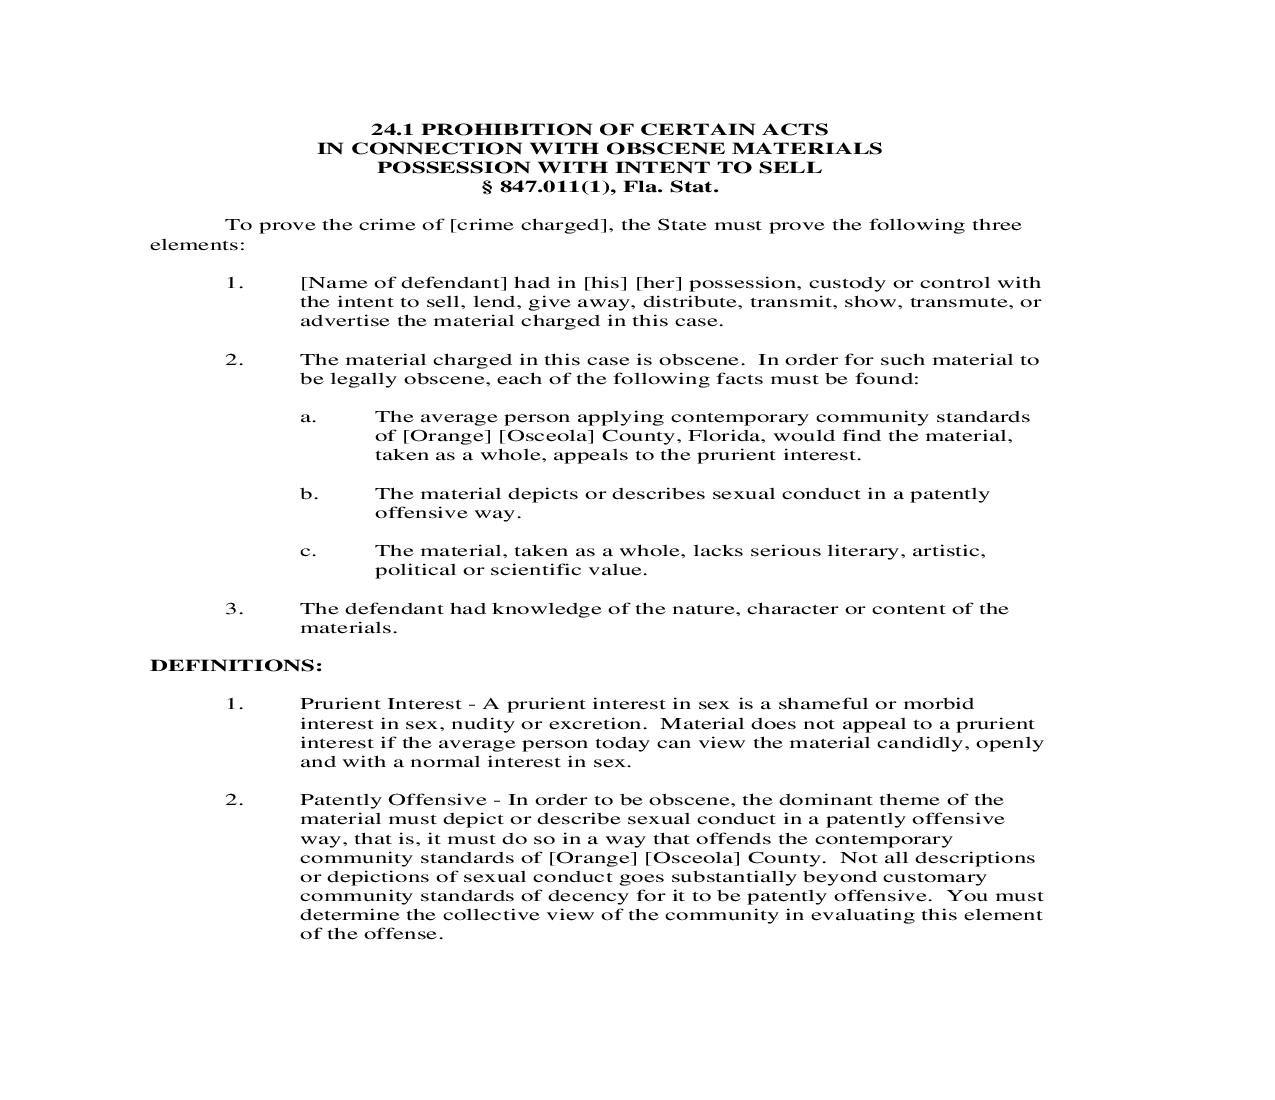 24.1. Prohibition Of Certain Acts In Connection With Obscene Materials Possession With Intent To Sell | Pdf Doc Docx | Florida_JI